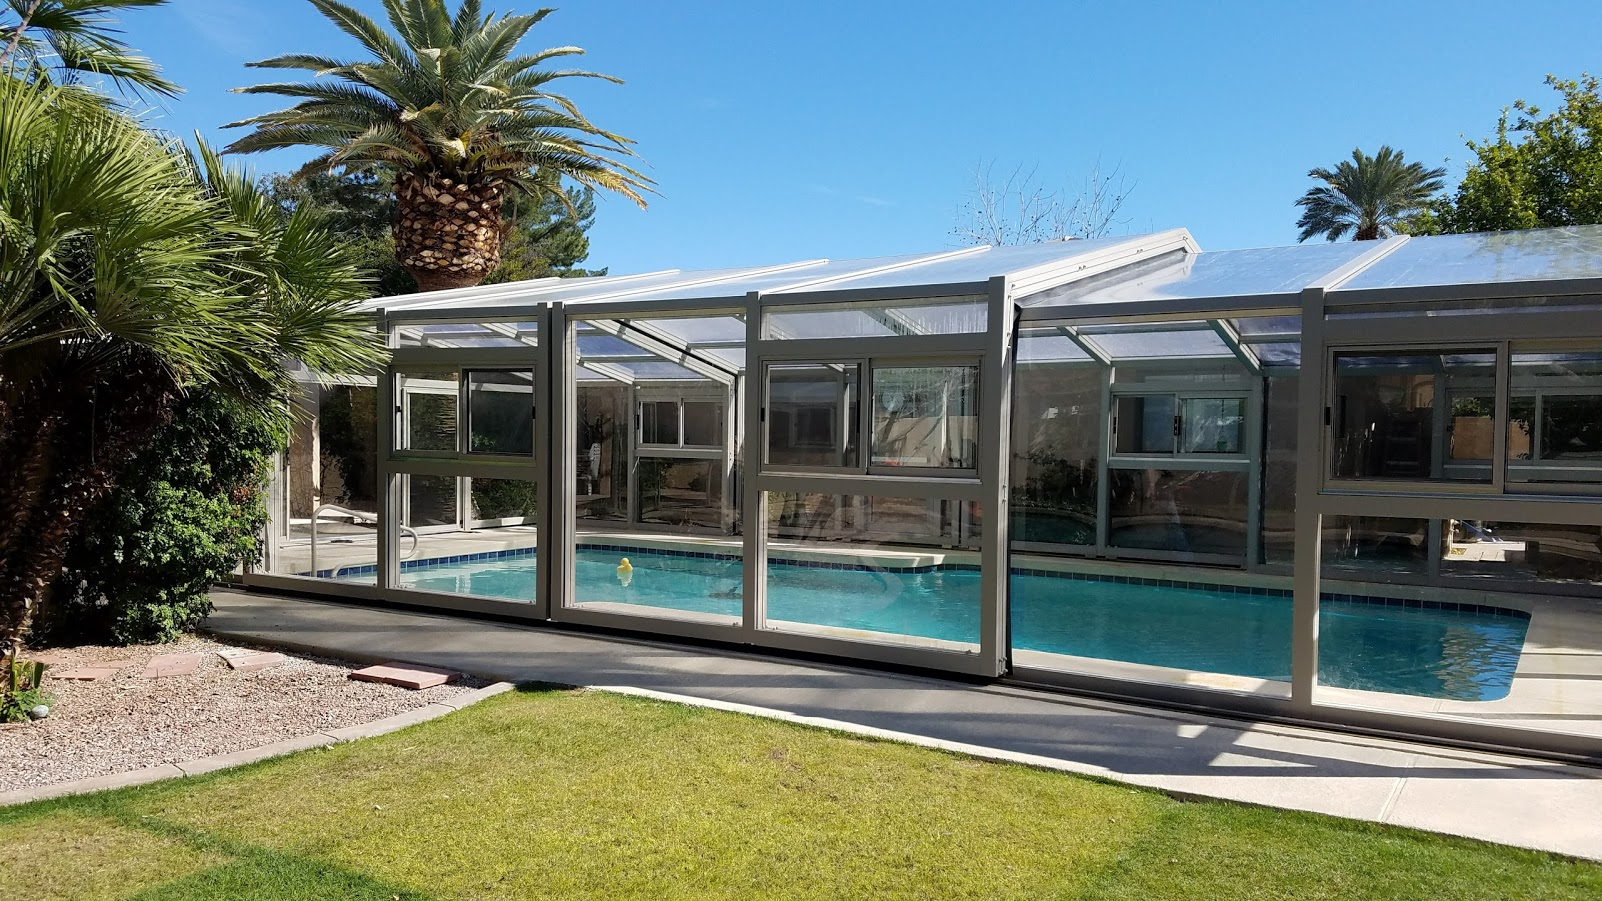 Arizona Pool Enclosures Enjoy And Protect Your Pool All